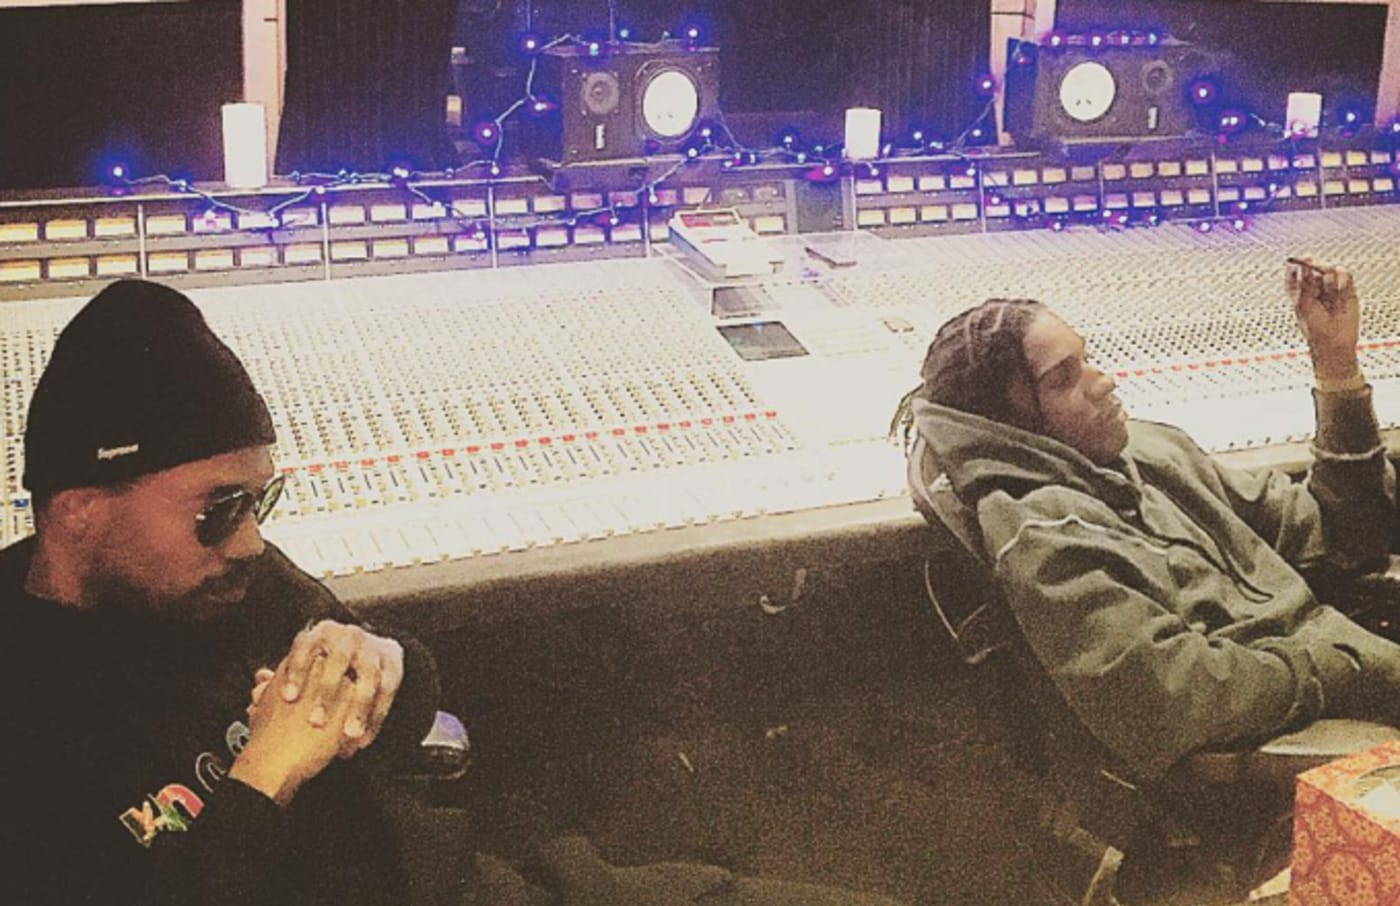 ASAP Rocky And Juicy J Image